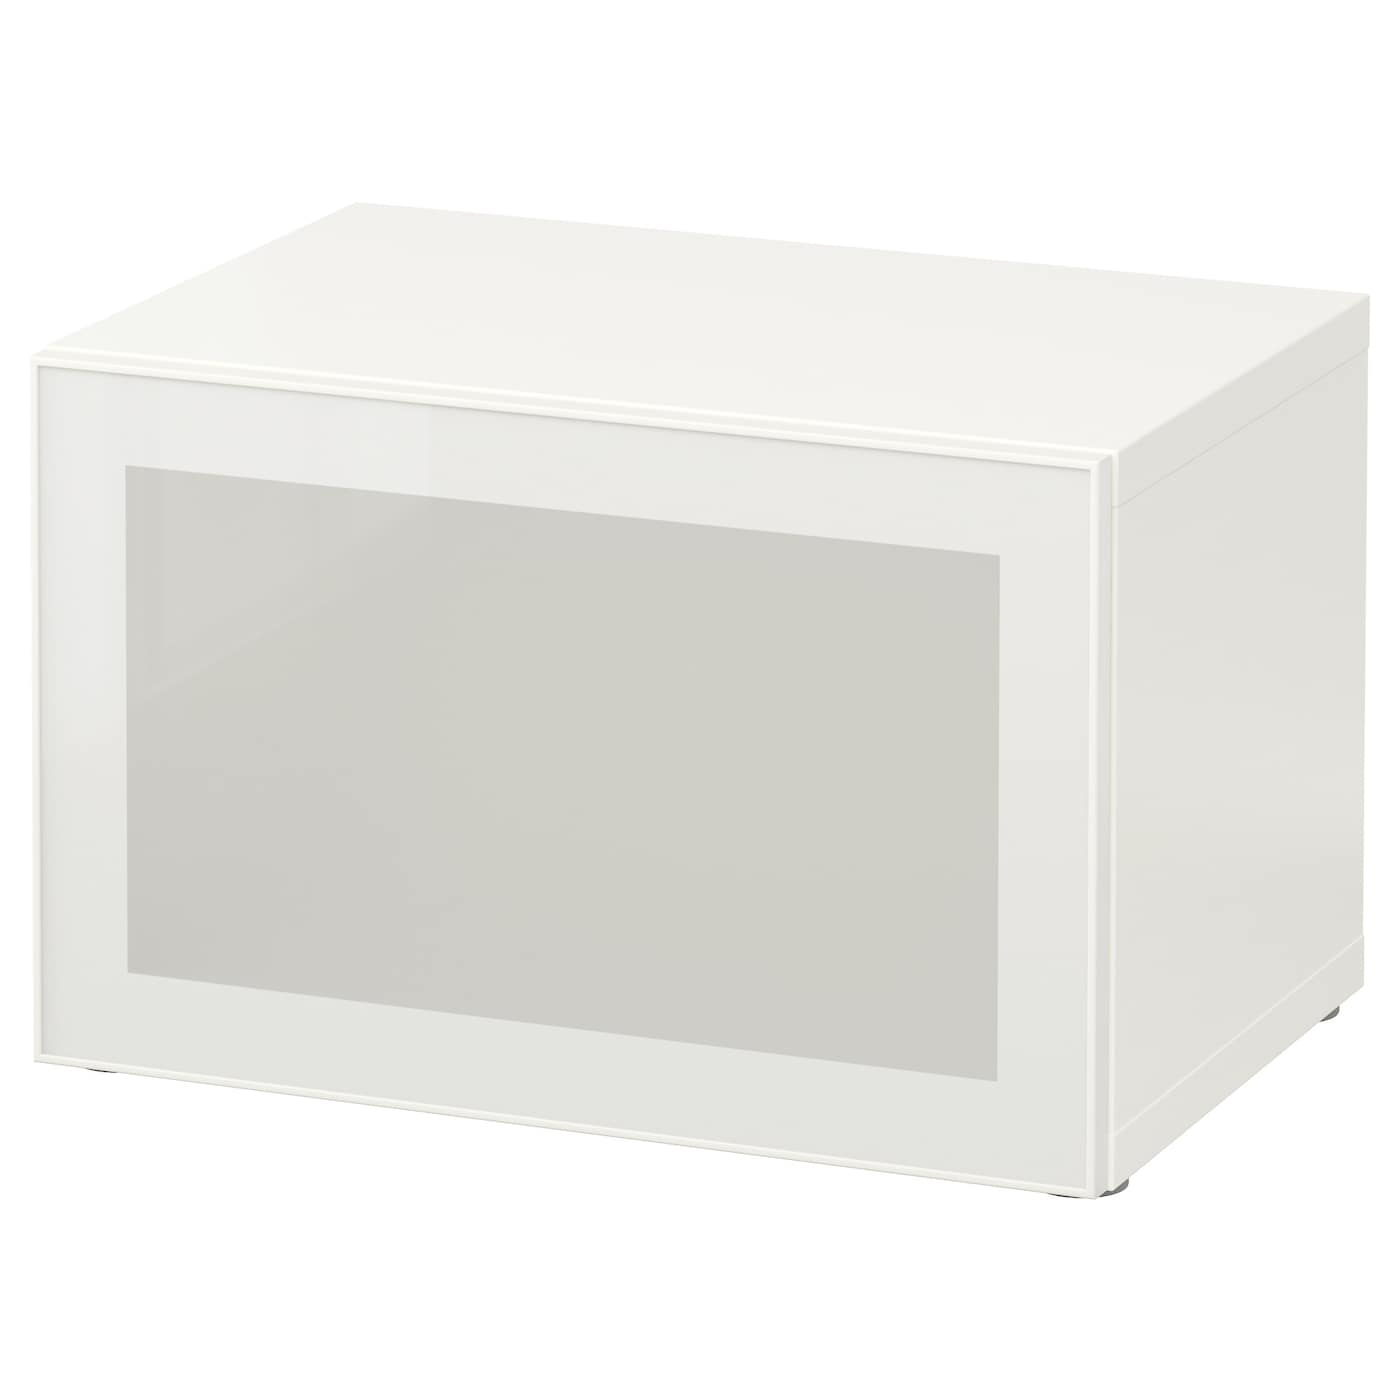 best shelf unit with glass door white glassvik white frosted glass 60 x 40 x 38 cm ikea. Black Bedroom Furniture Sets. Home Design Ideas